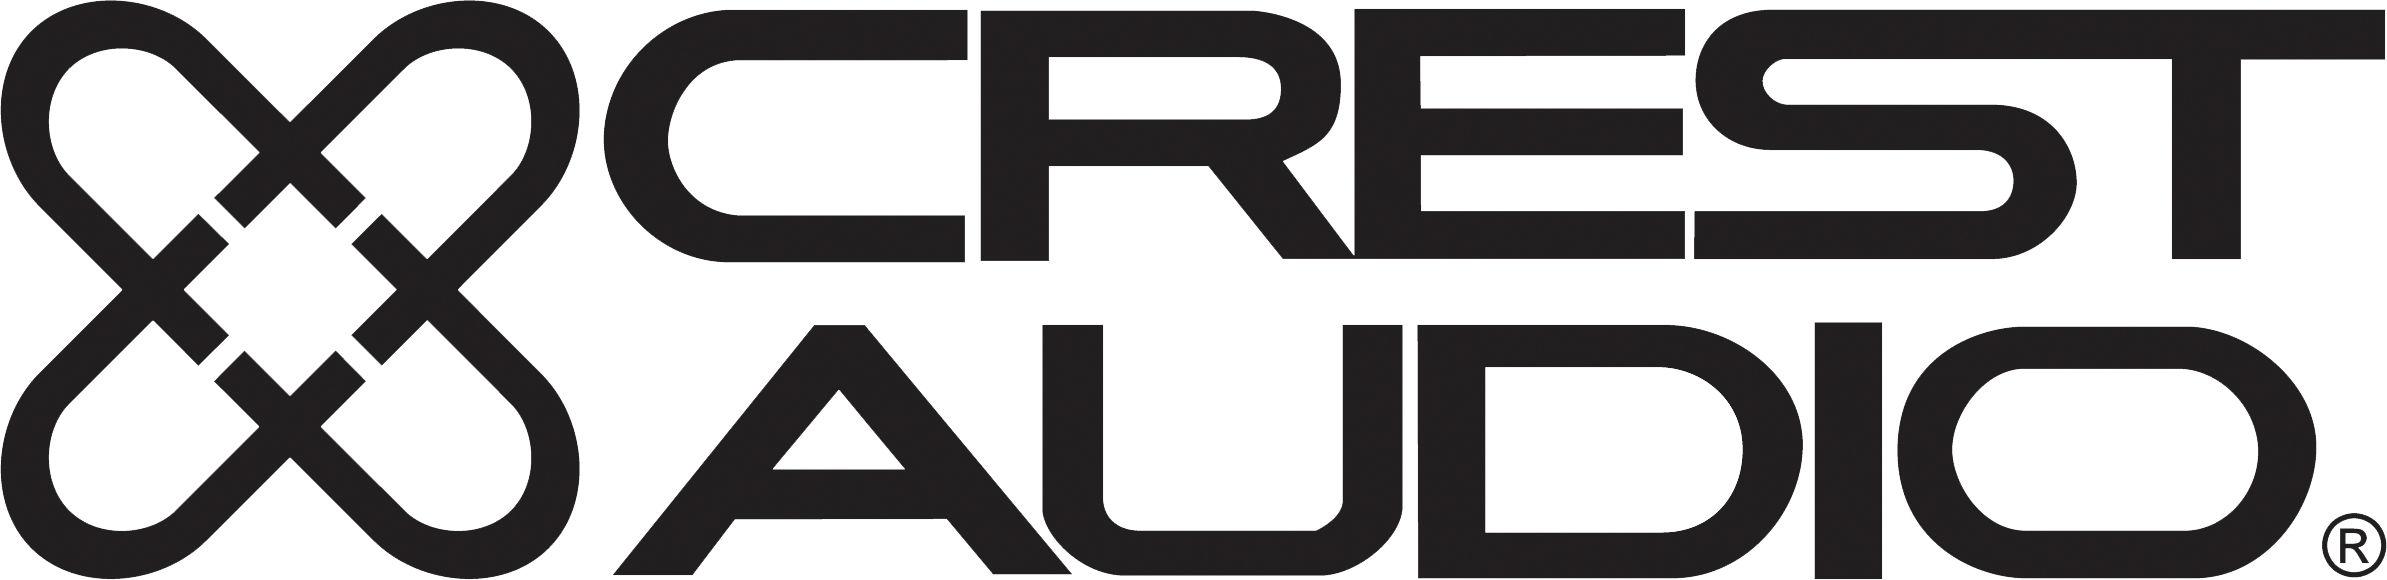 Crest Audio logo